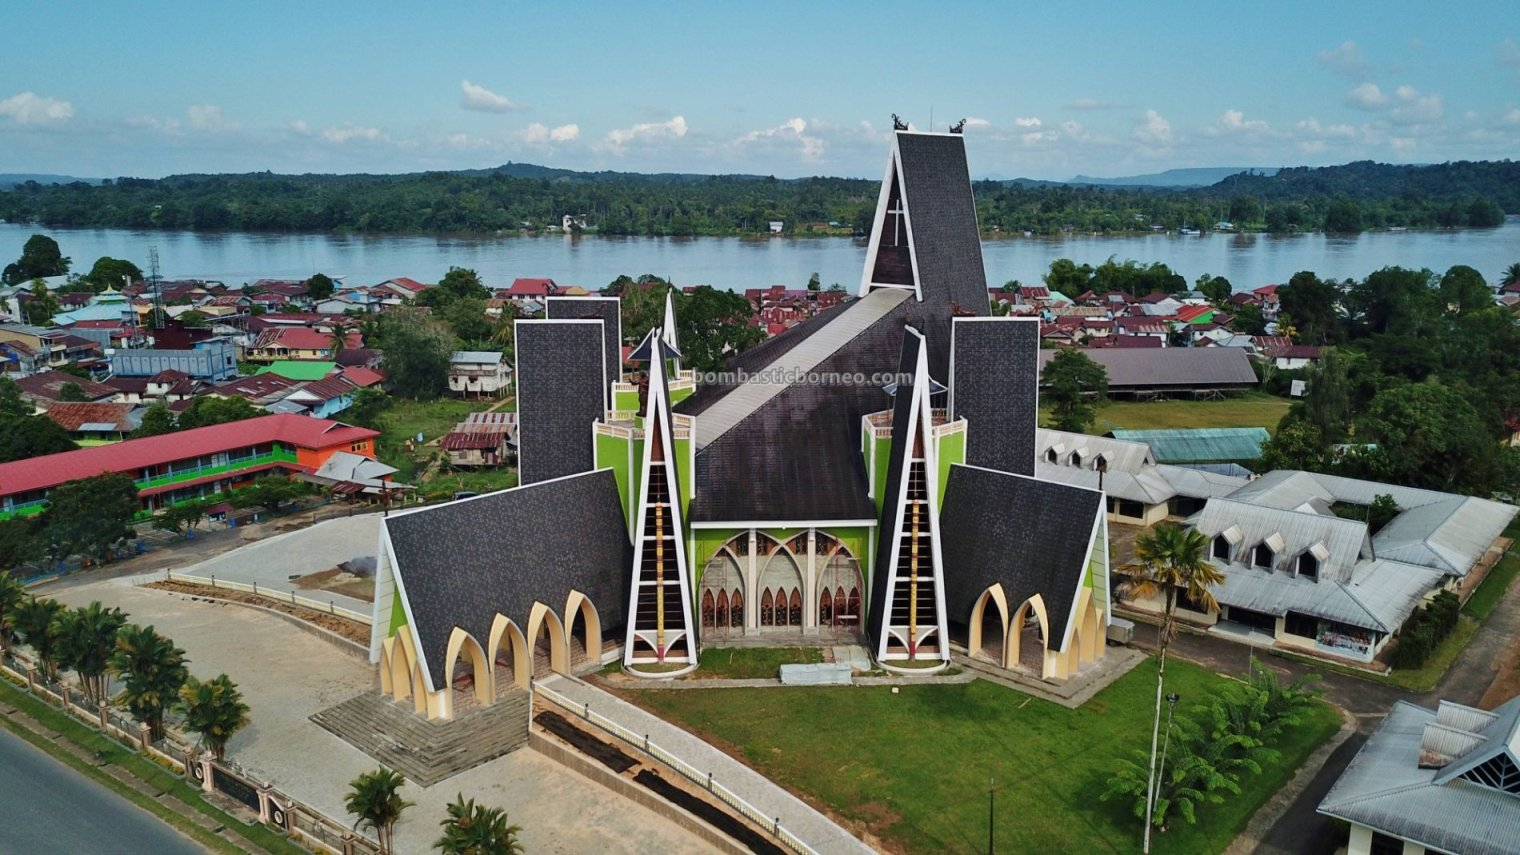 cathedral, Sacred Heart of Jesus, destination, Borneo, Indonesia, West Kalimantan, obyek wisata, Tourism, tourist attraction, town, travel guide, cross border, 印尼西加里曼丹, 上侯天主教教堂